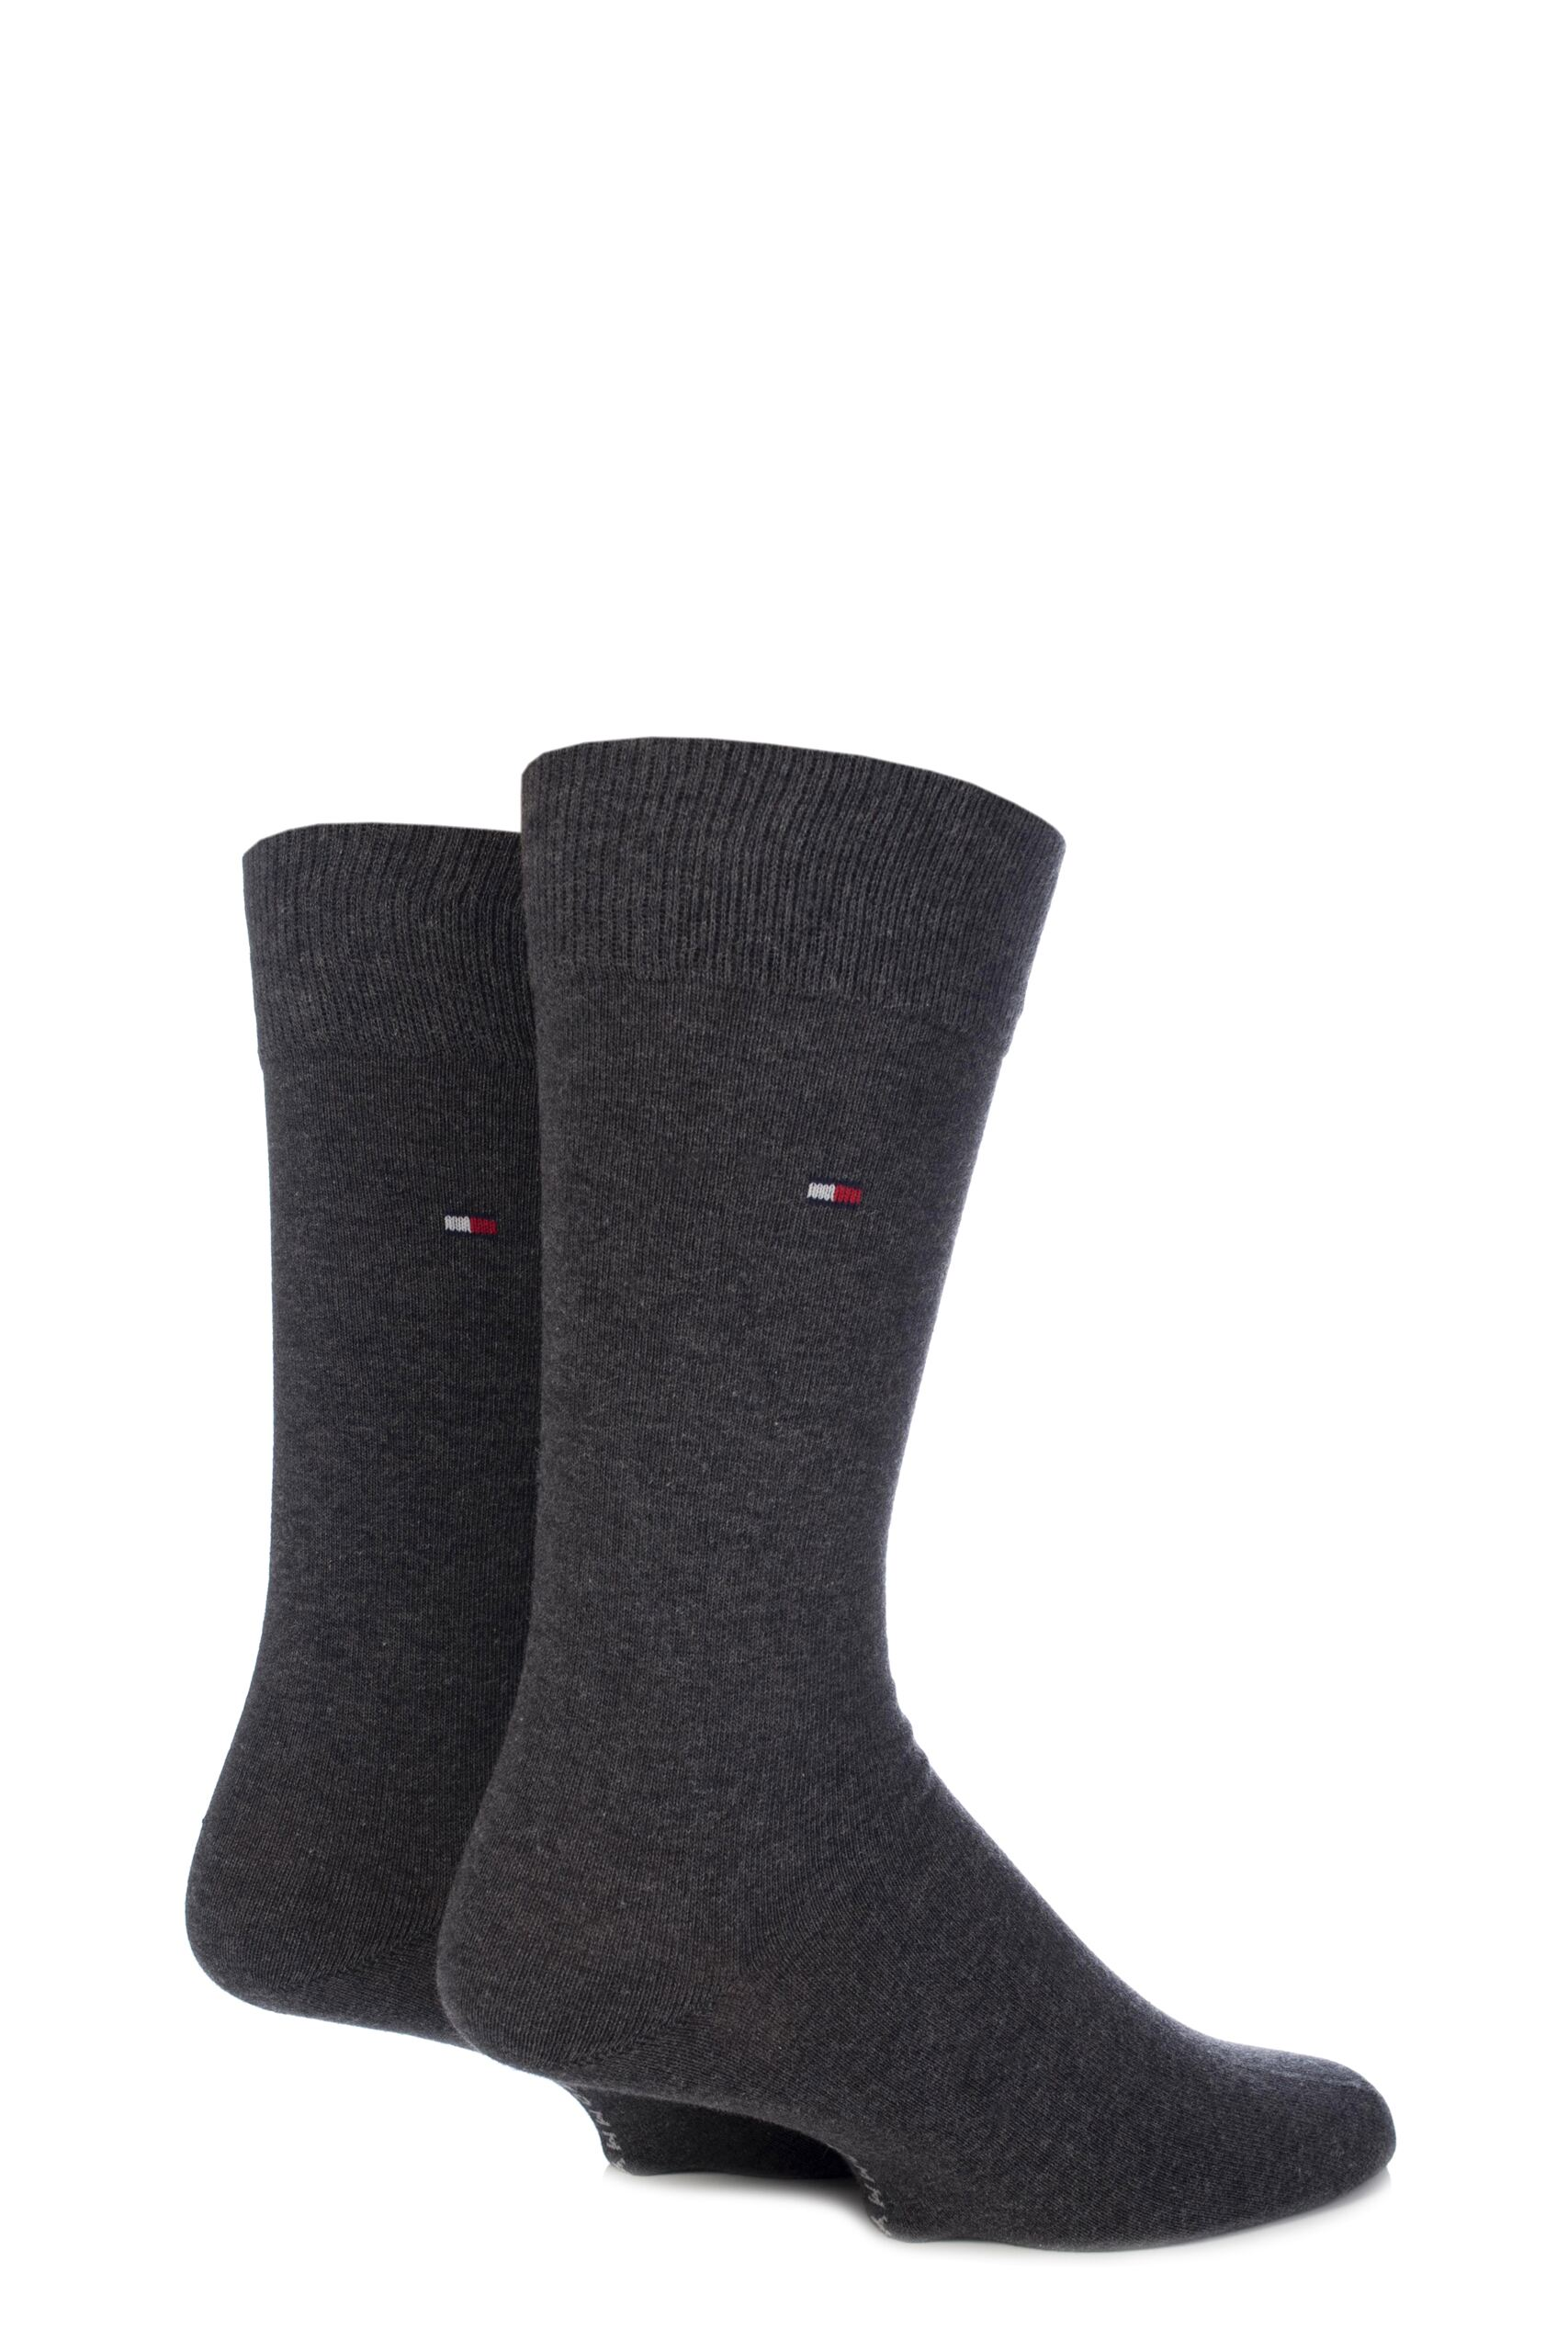 Image of 2 Pair Anthracite Melange Classic Plain Cotton Socks Men's 9-11 Mens - Tommy Hilfiger